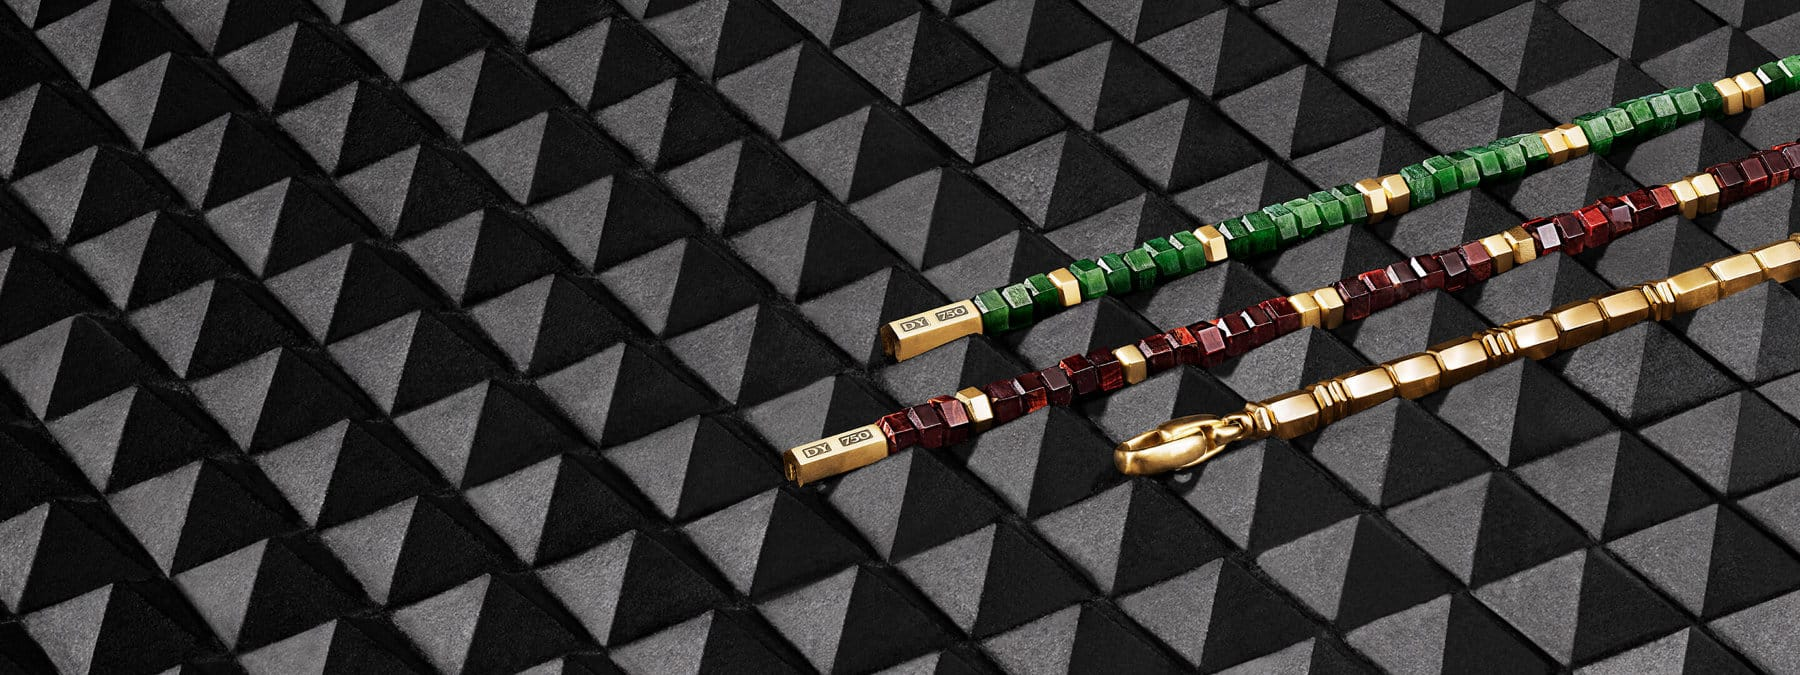 A color photograph shows a row of three David Yurman men's bracelets from the Hex collection against a black background. The bracelets are crafted from 18K yellow gold six-sided beads with or without jade six-sided beads or red tiger eye's six-sided beads